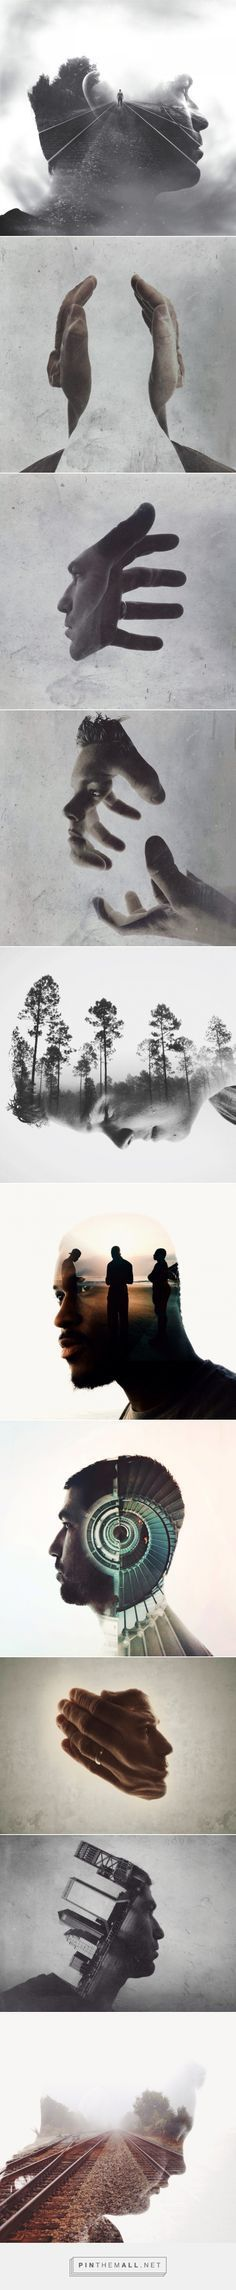 Double Exposure Portraits by Brandon Kidwell | Inspiration Grid | Design…: